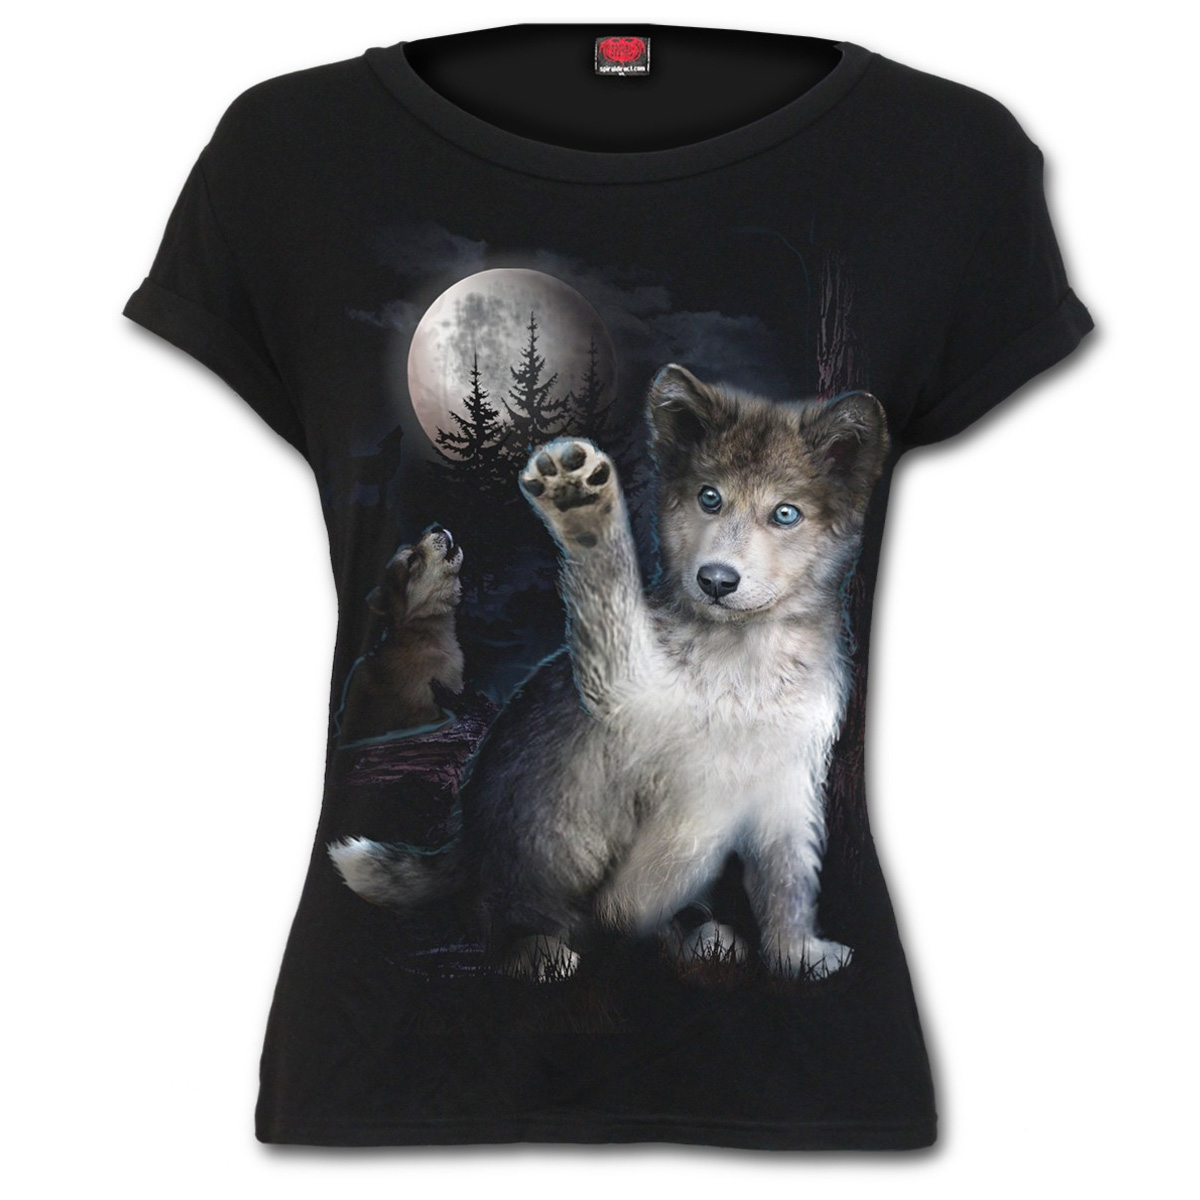 SPIRAL-DIRECT-Ladies-Black-Goth-Moon-WOLF-PUPPY-T-Shirt-Top-All-Sizes thumbnail 3